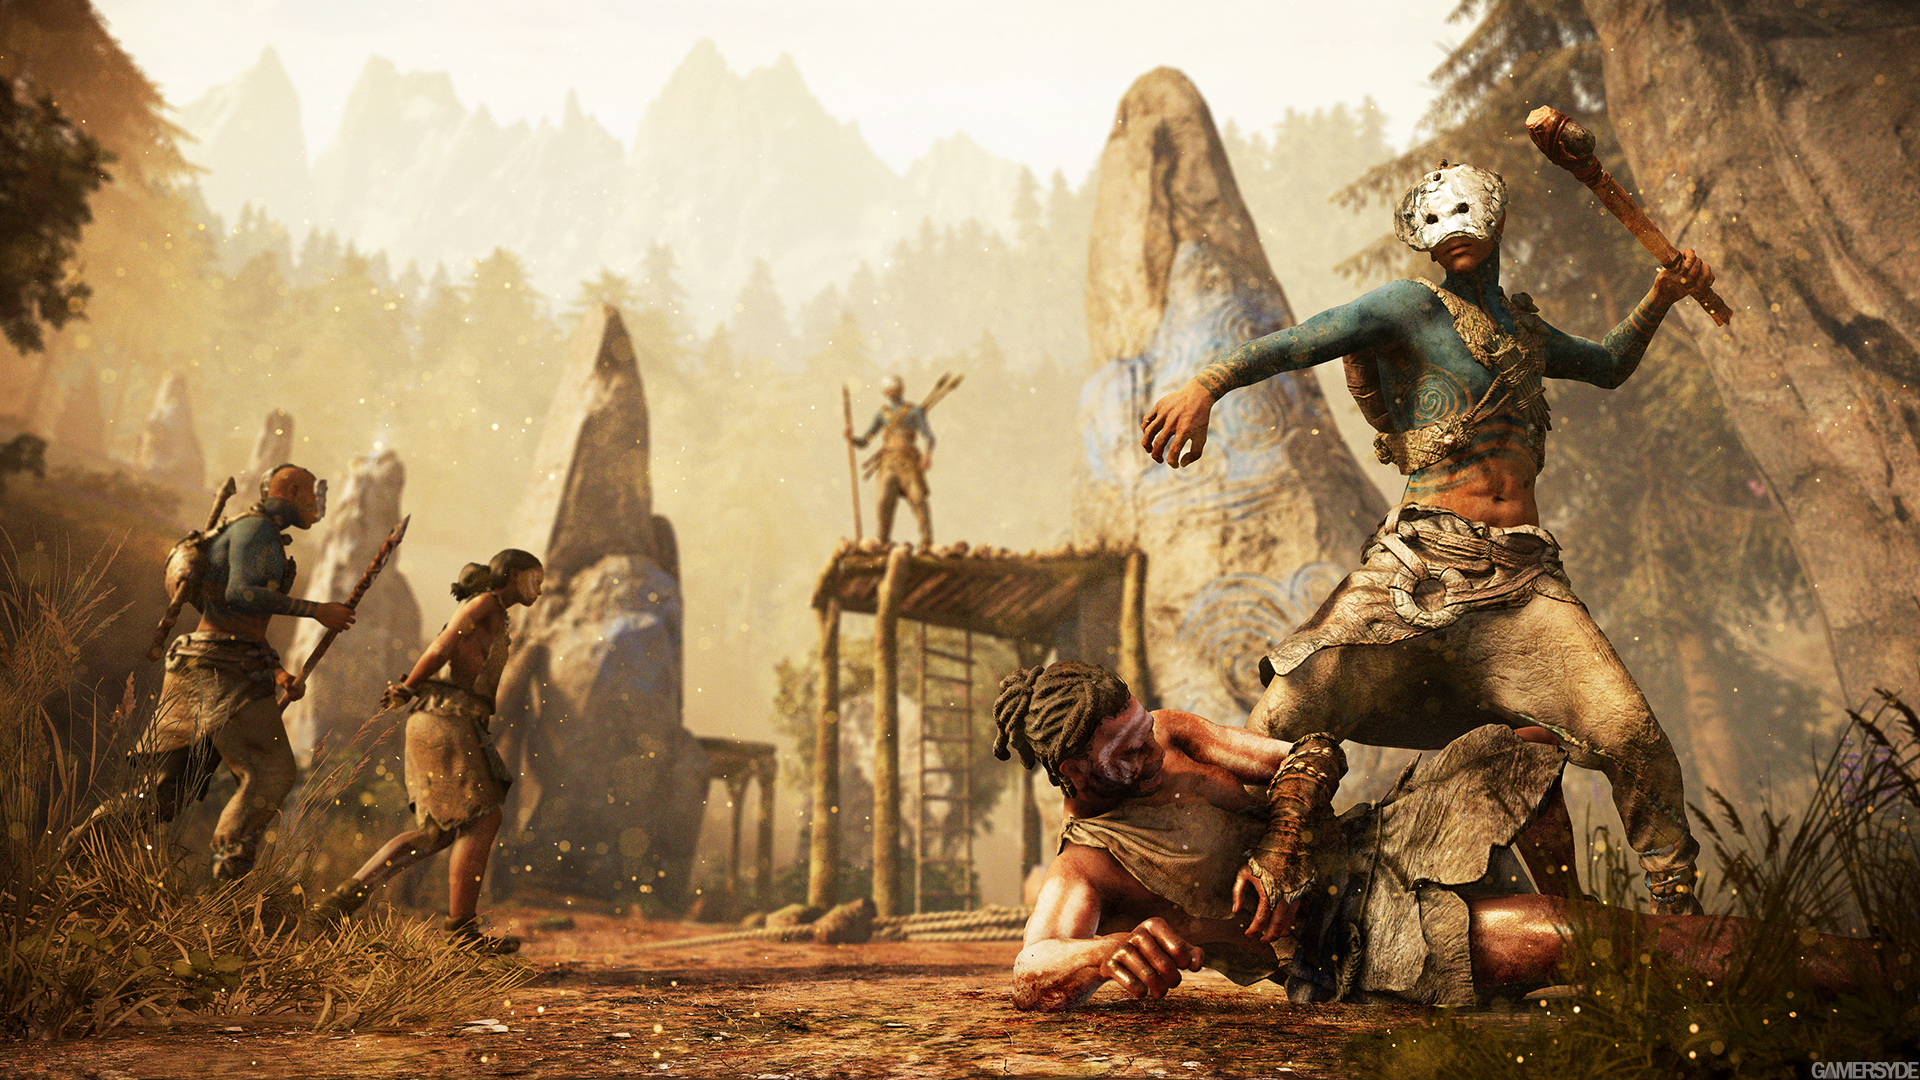 image_far_cry_primal-29820-3404_0002